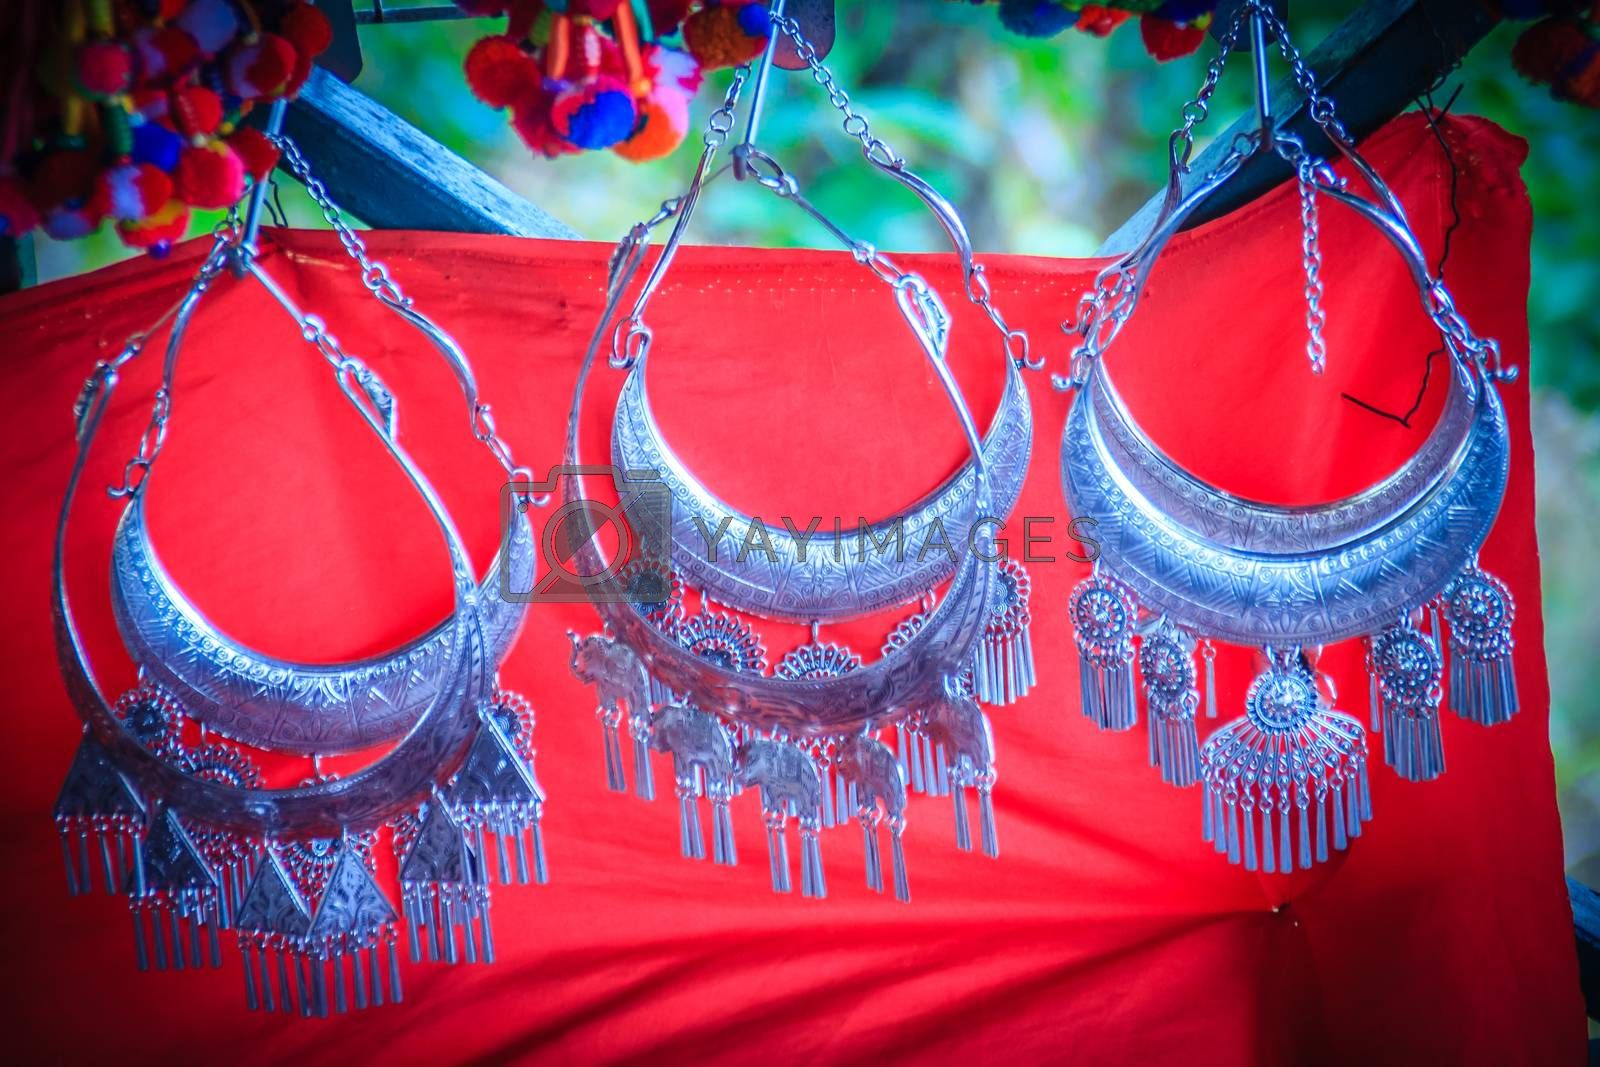 Beautiful traditional Hmong hill tribe silver ornaments for sale as souvenir at Doi Pui's Hmong ethnic hill-tribe village, Chiang Mai, Thailand.